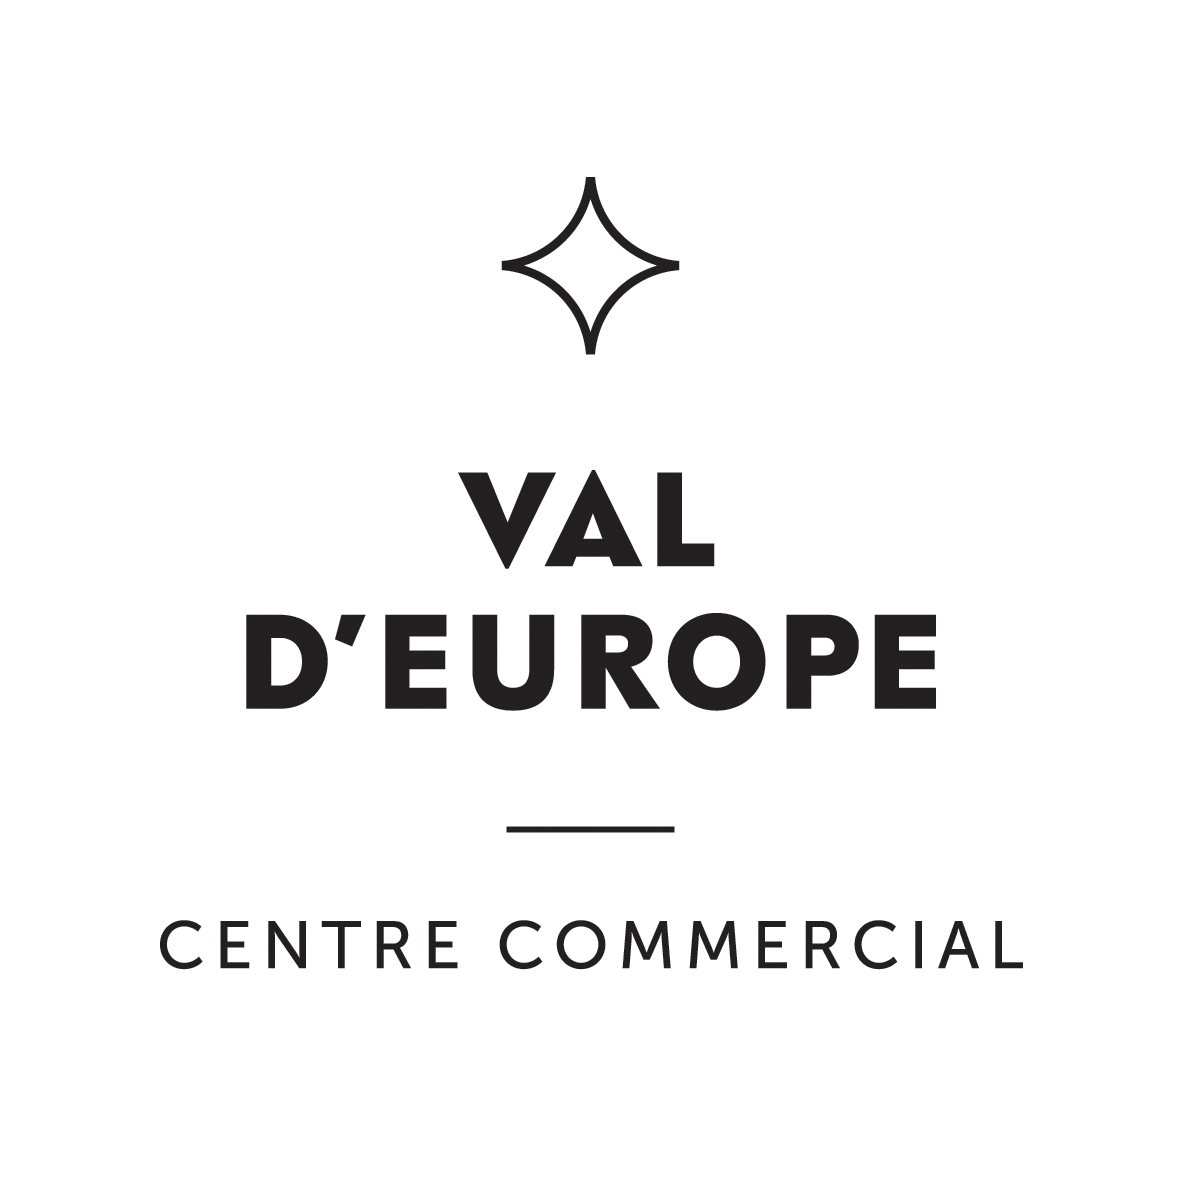 Val d'Europe Centre commercial